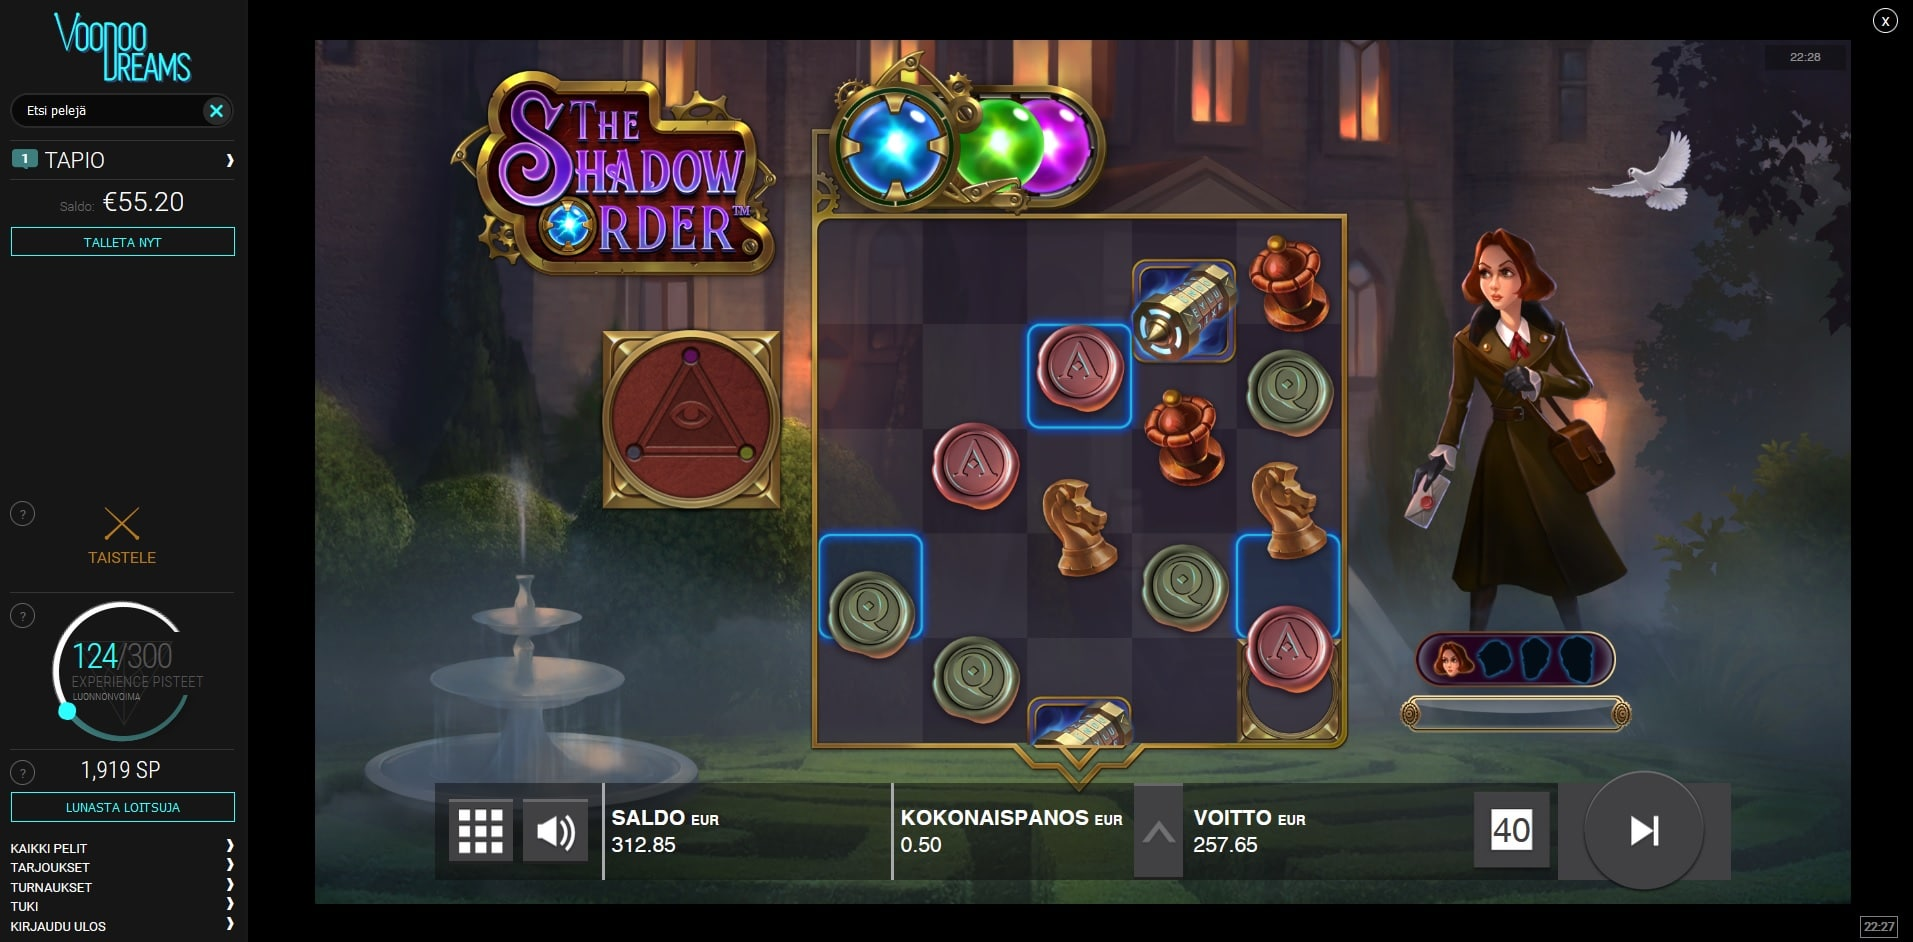 The Shadow Order Big Win Picture